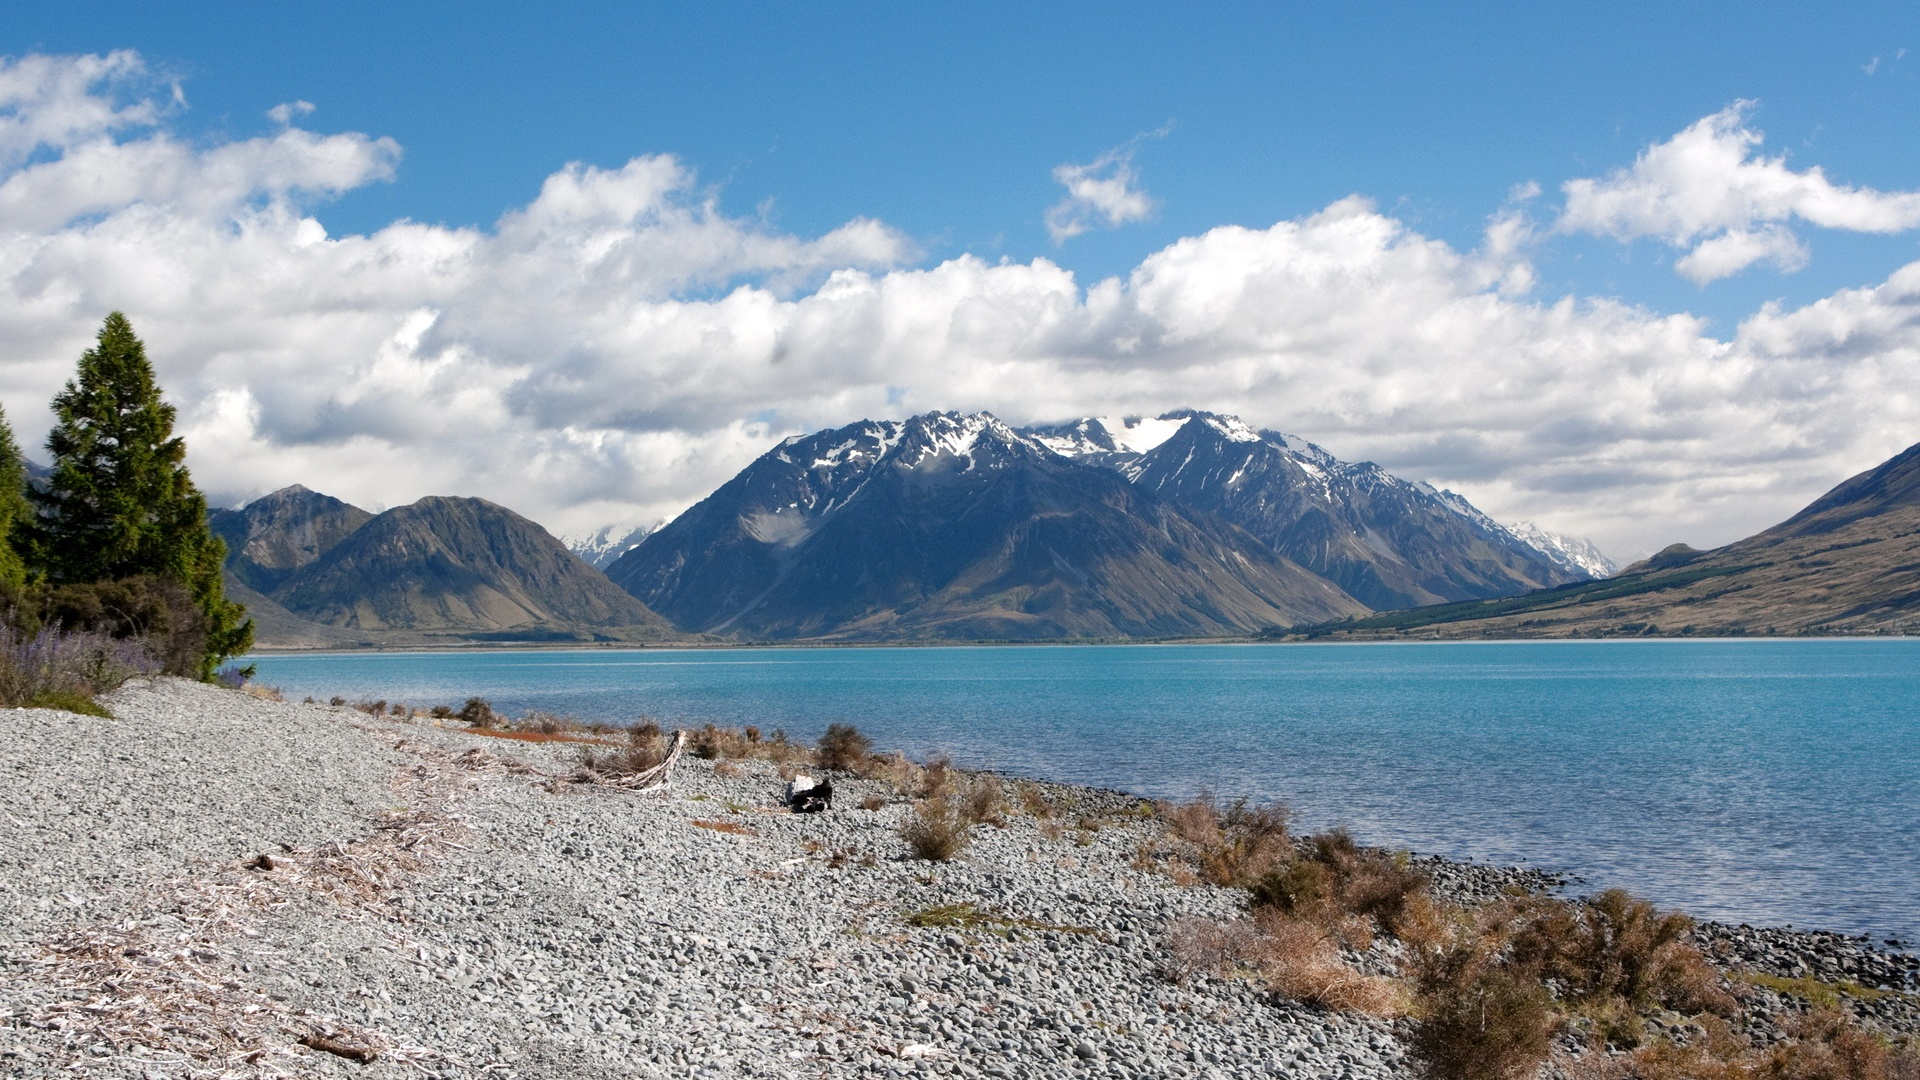 Wallpaper Rivers Of New Zealand 1920x1200 Hd Picture Image